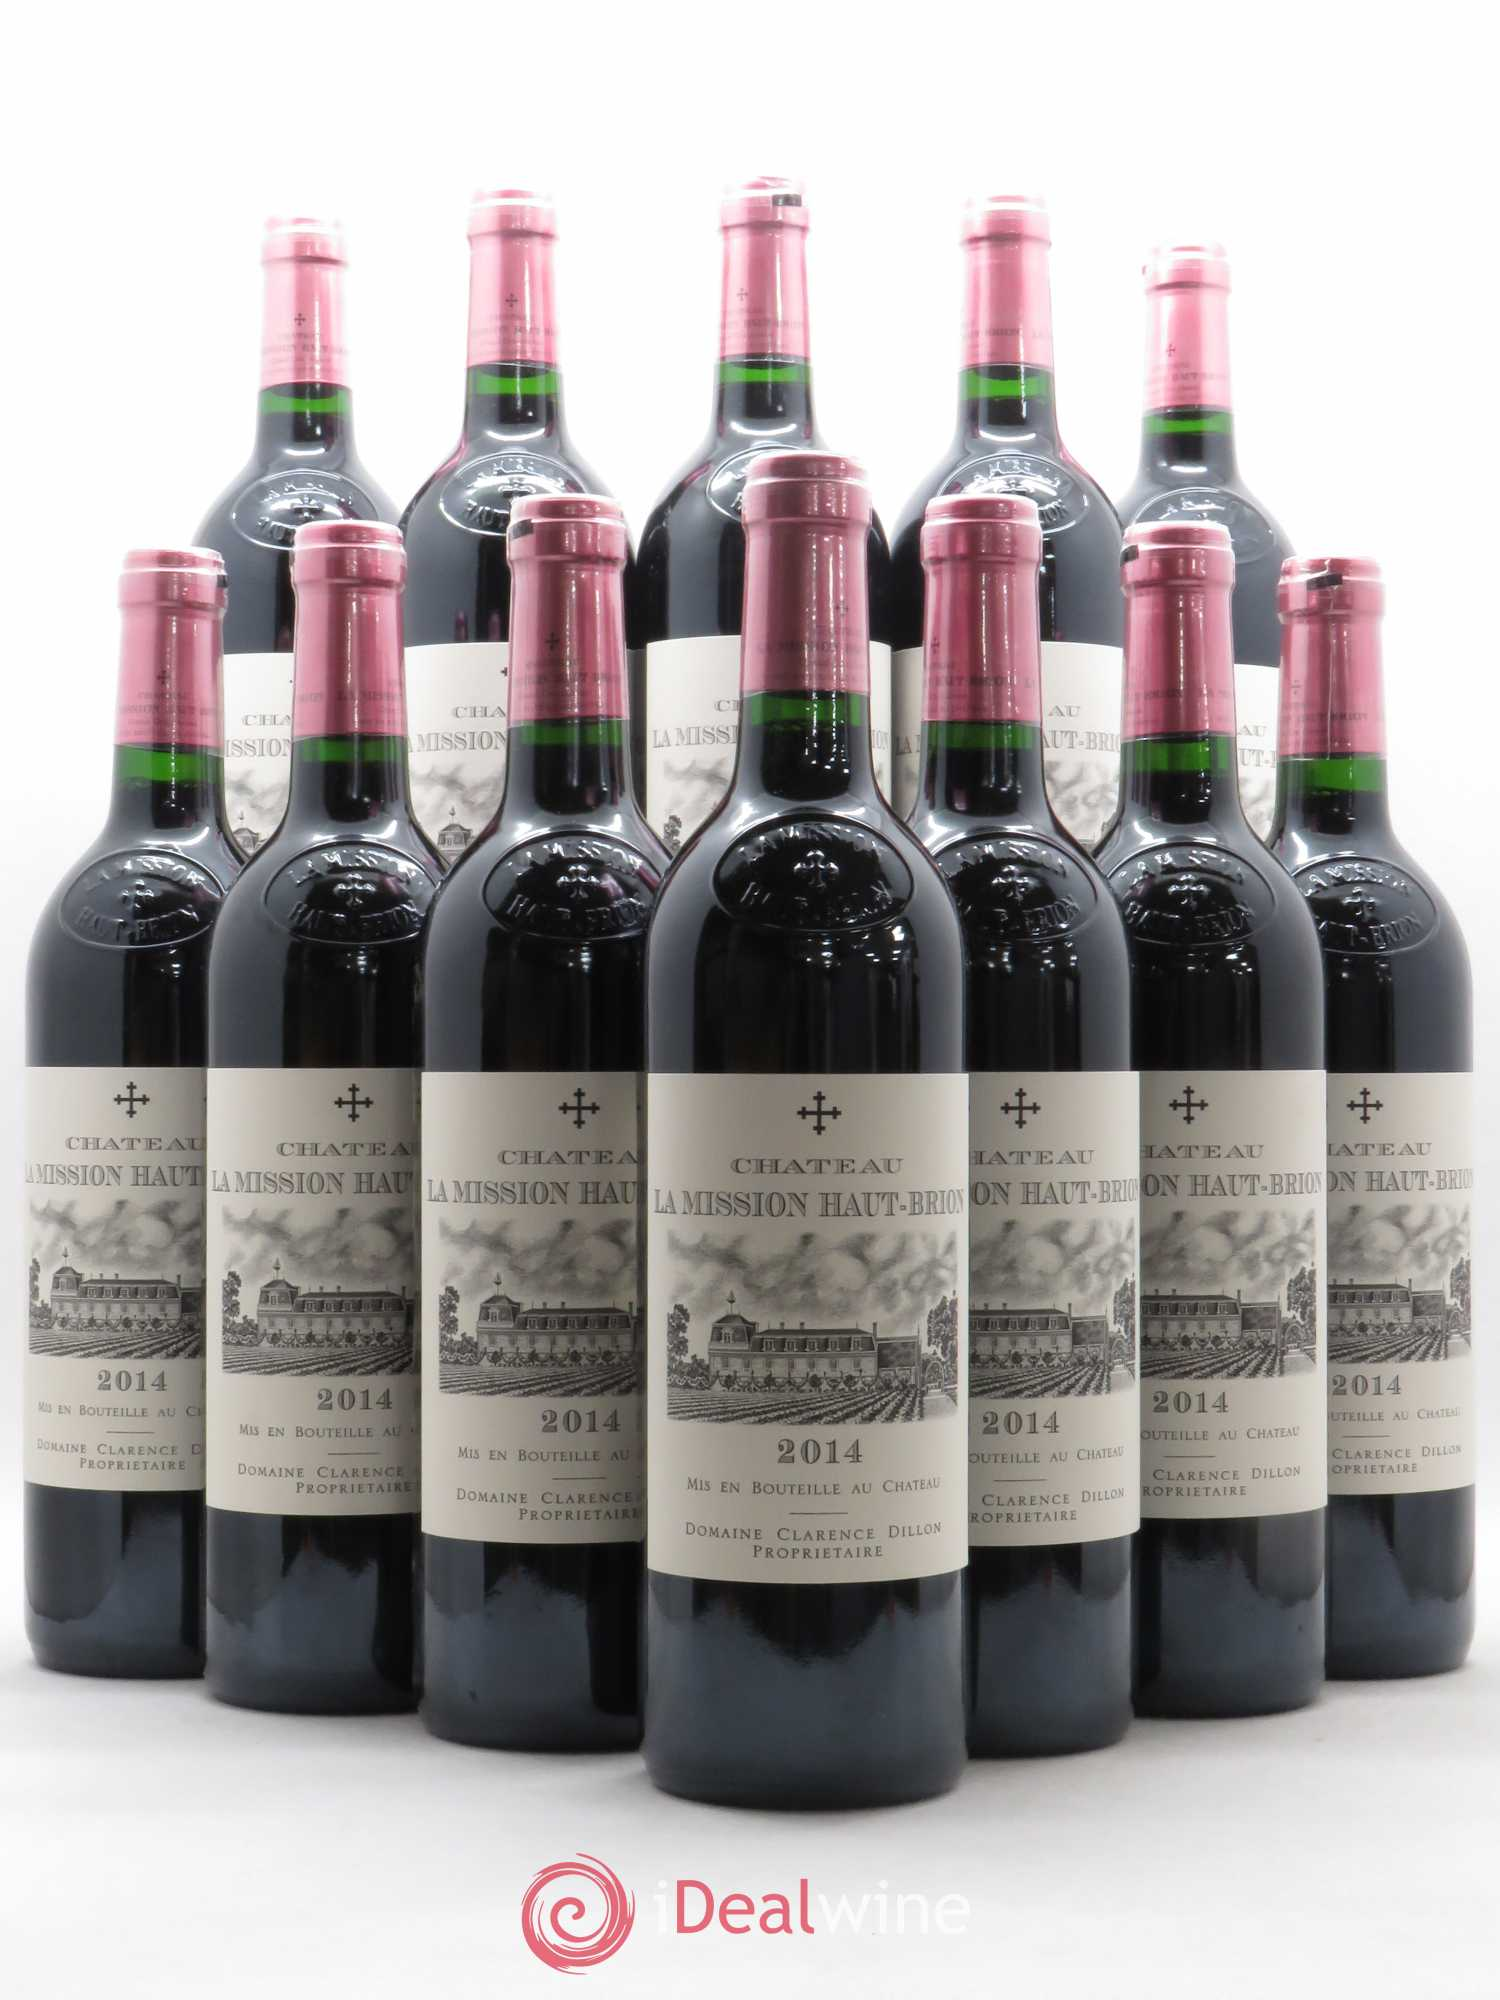 Château La Mission Haut-Brion Cru Classé de Graves  2014 - Lot of 12 Bottles